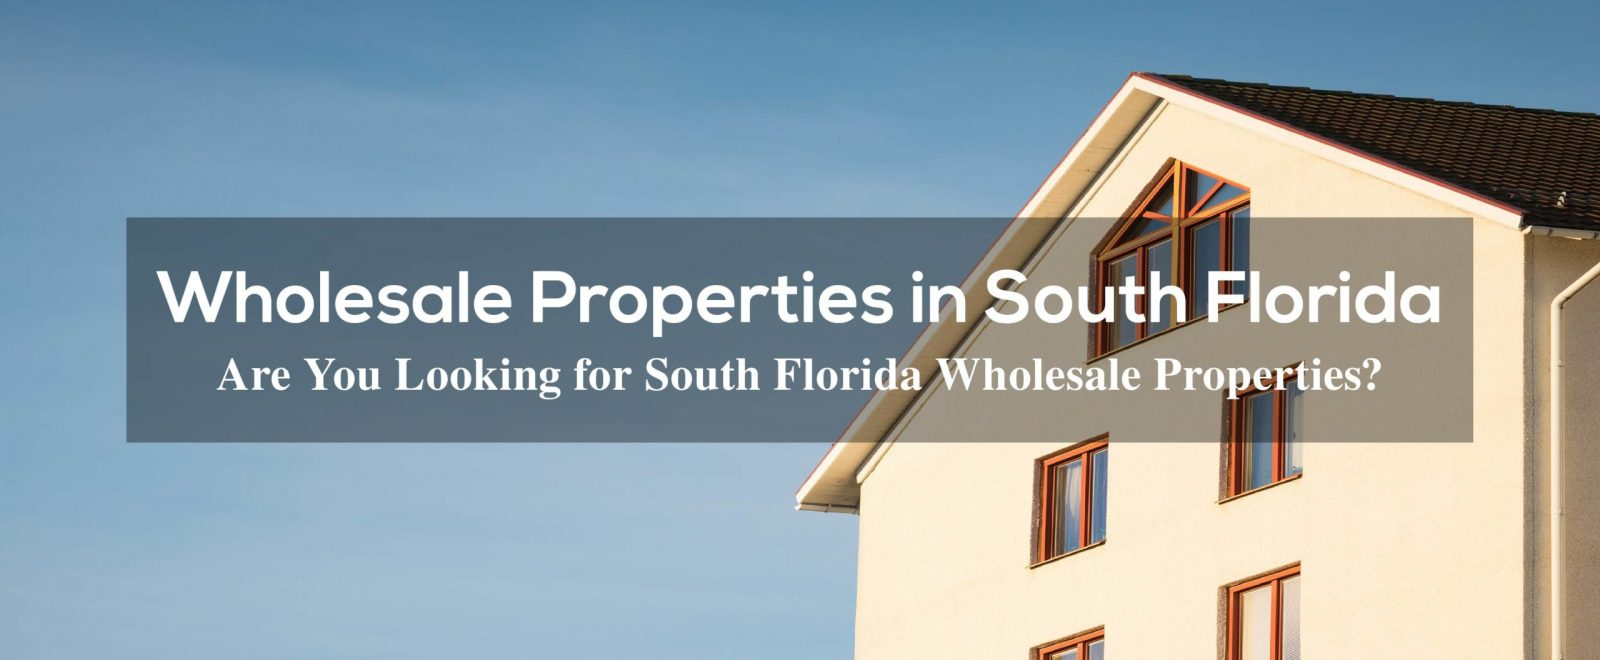 Investor-South Florida Flippers 1600by660